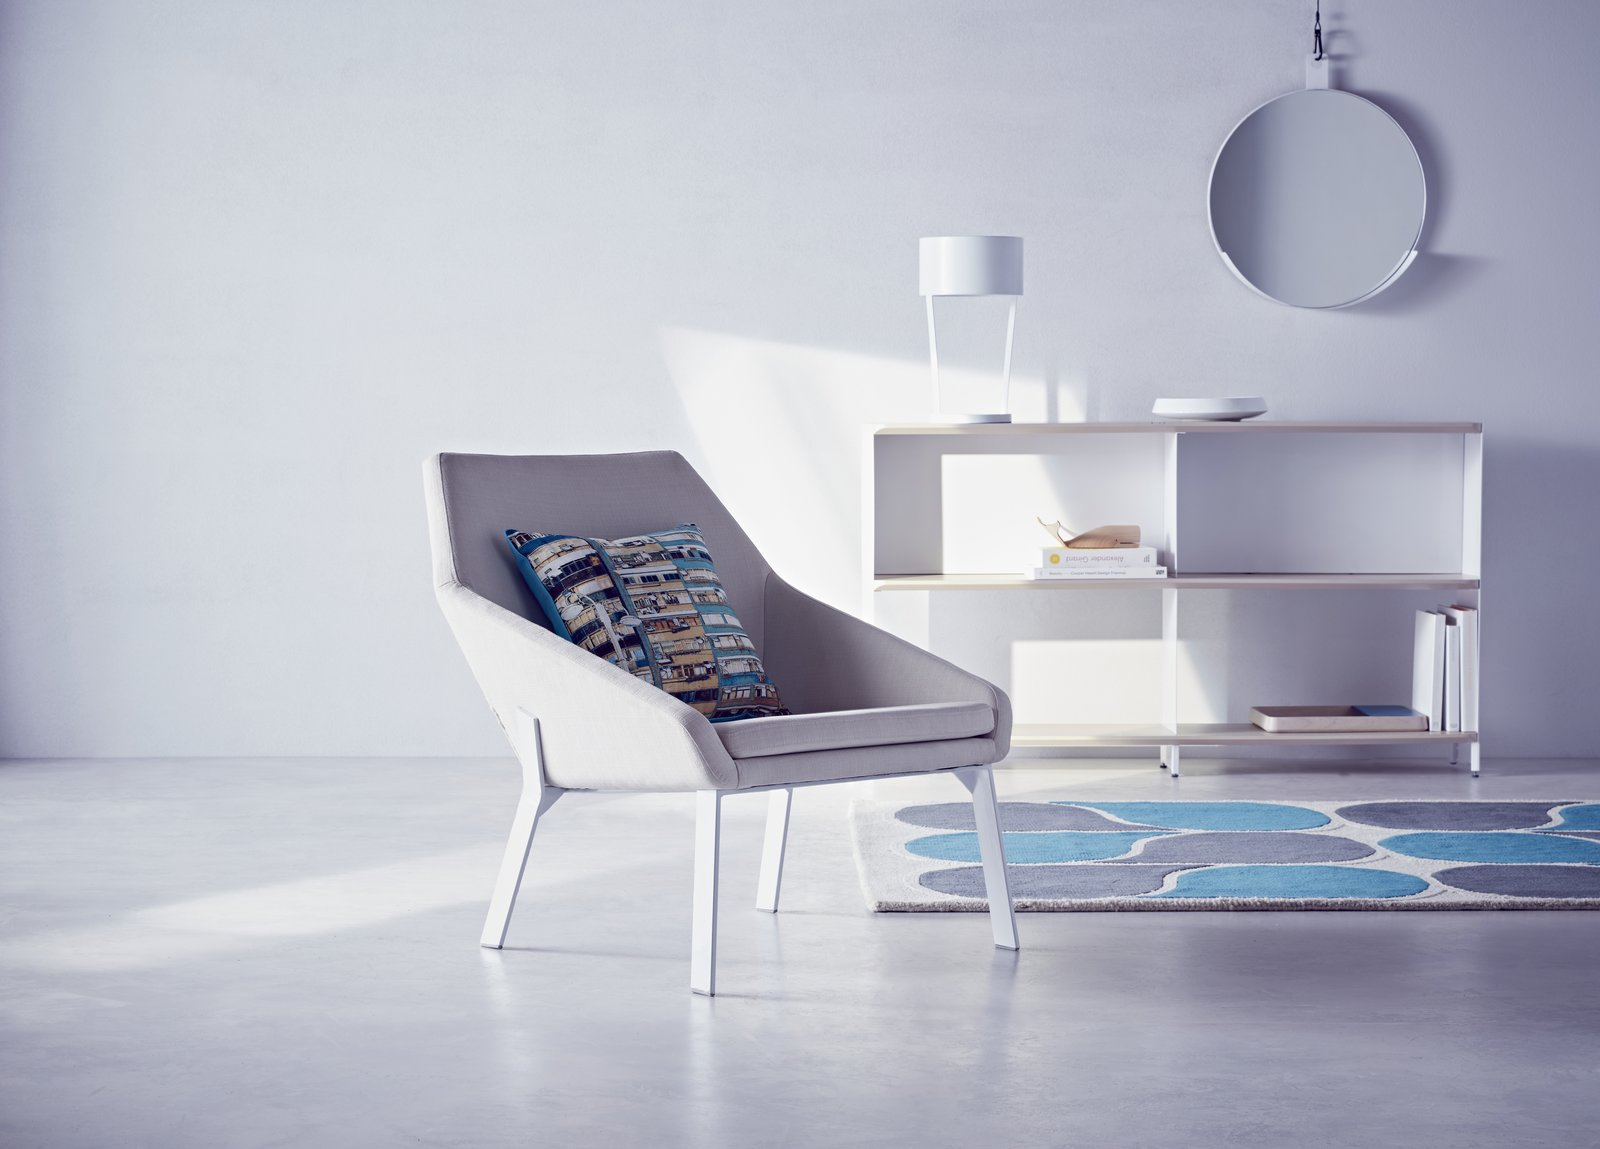 After deciding what the line would look like, Deam and Dine pooled their ideas and The Dwell x Target Lookbook Reveals a Sleek New Collection for the Modern Home - Photo 3 of 10